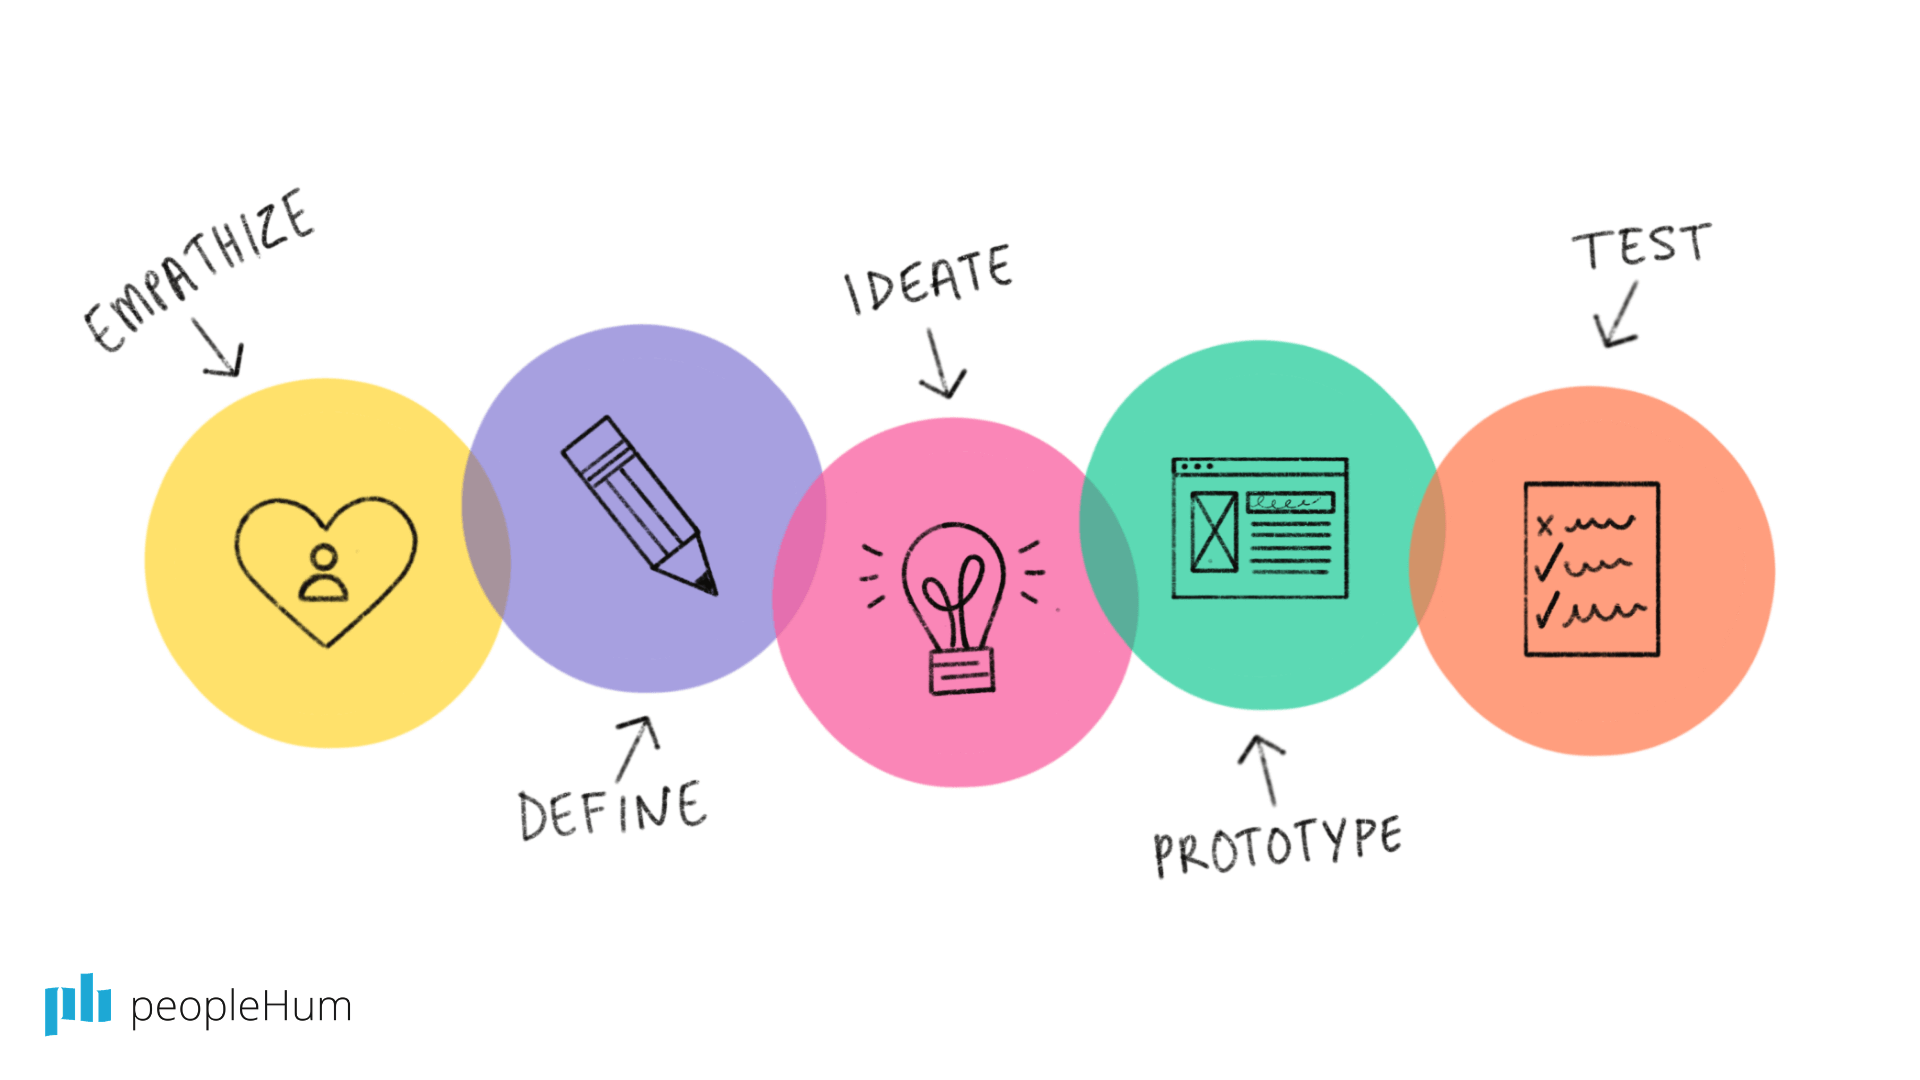 Design thinking employee experience considers experience and data